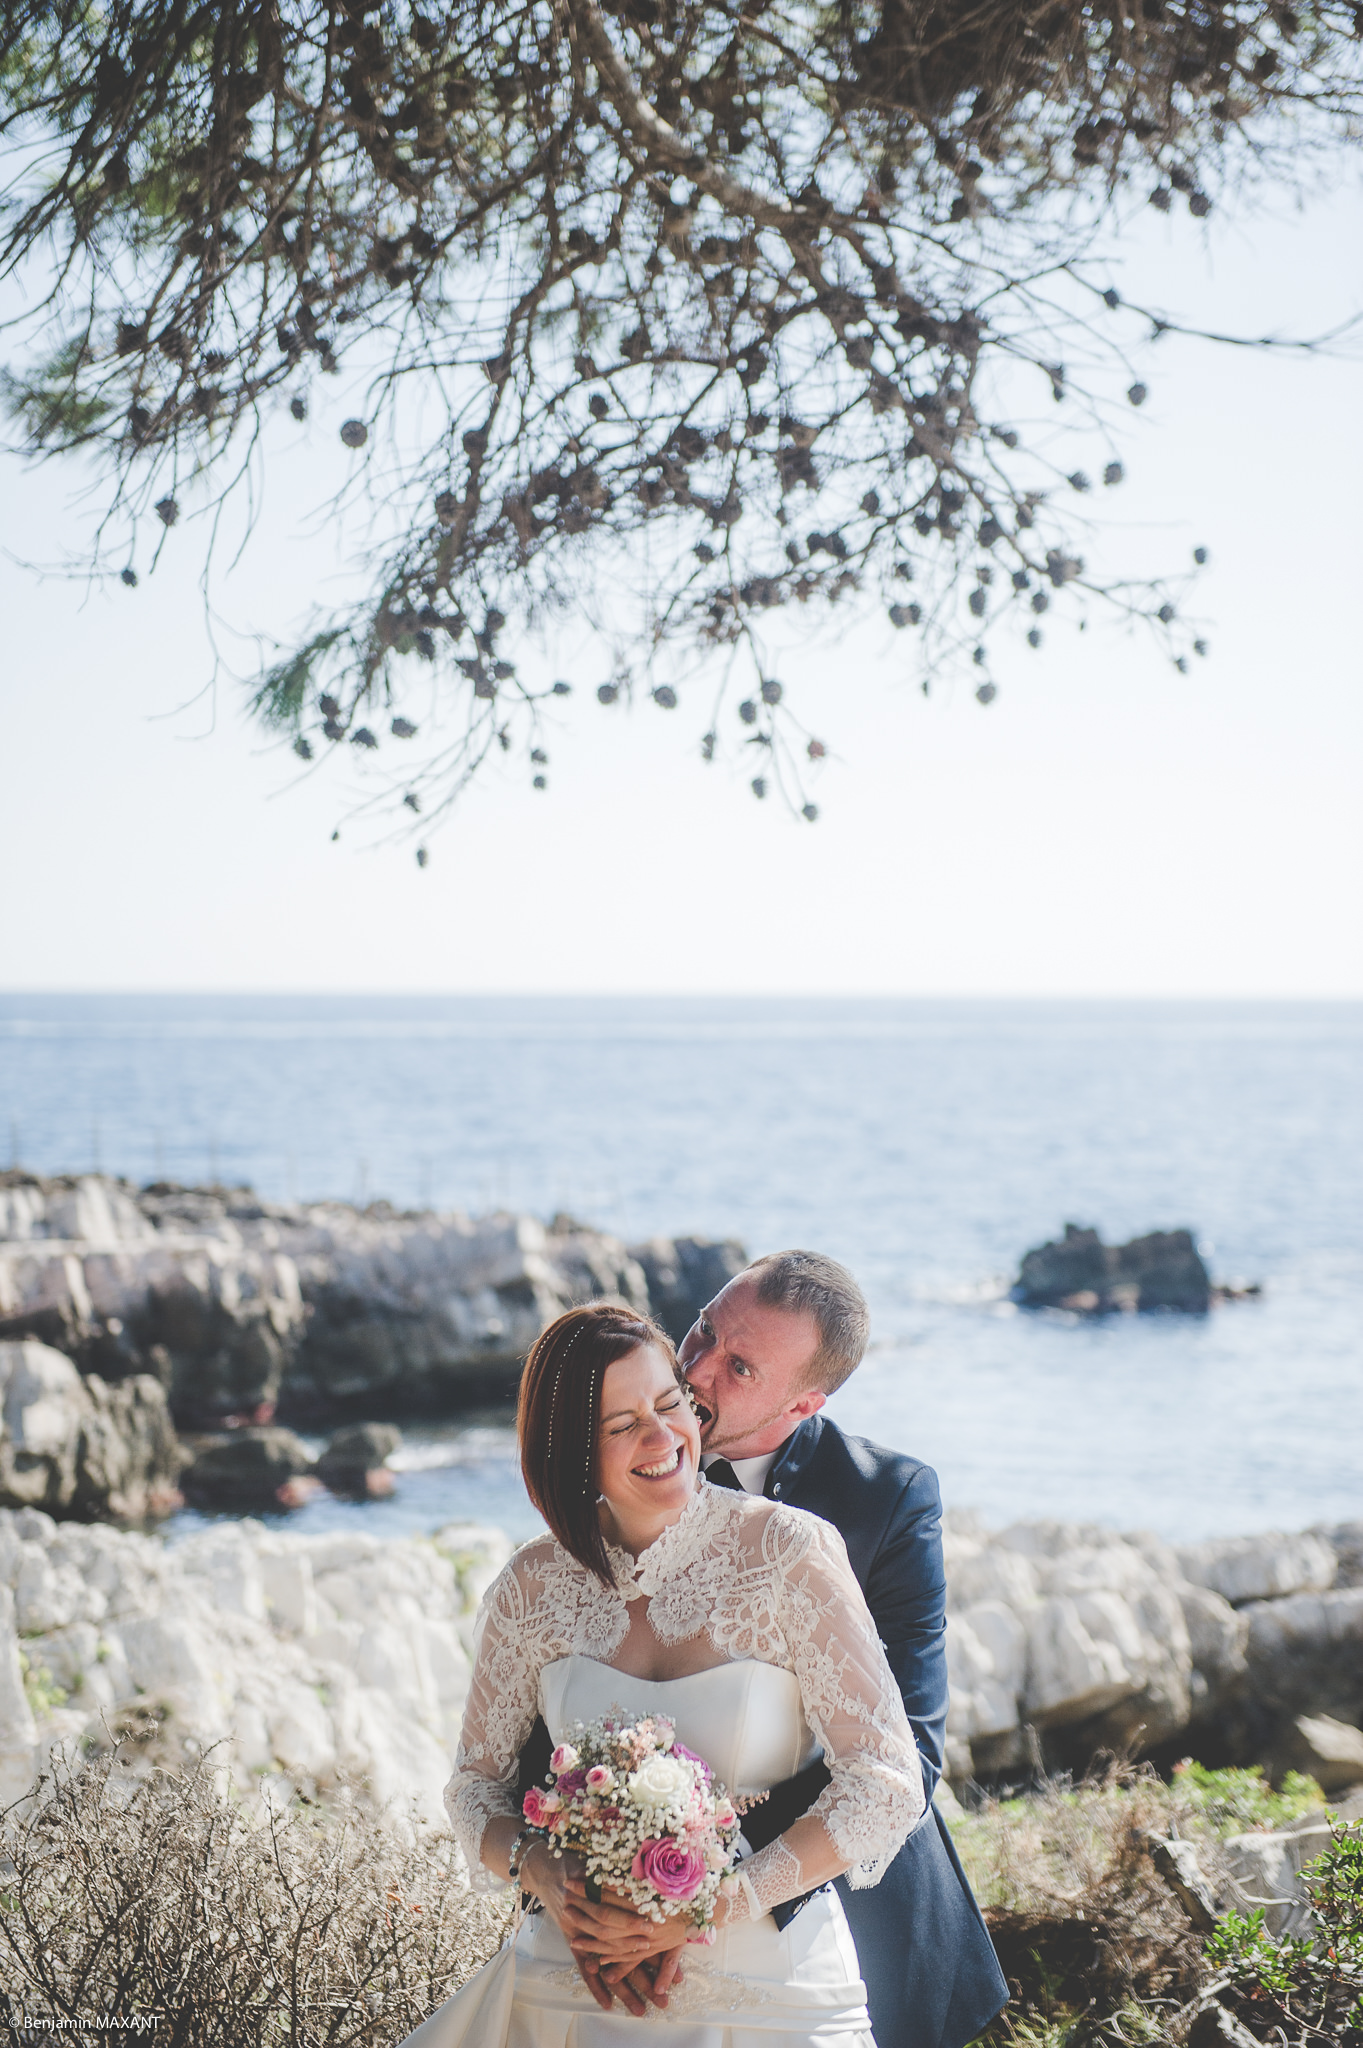 Photo shoot engagement trail ccap of Antibes Pins Parasol